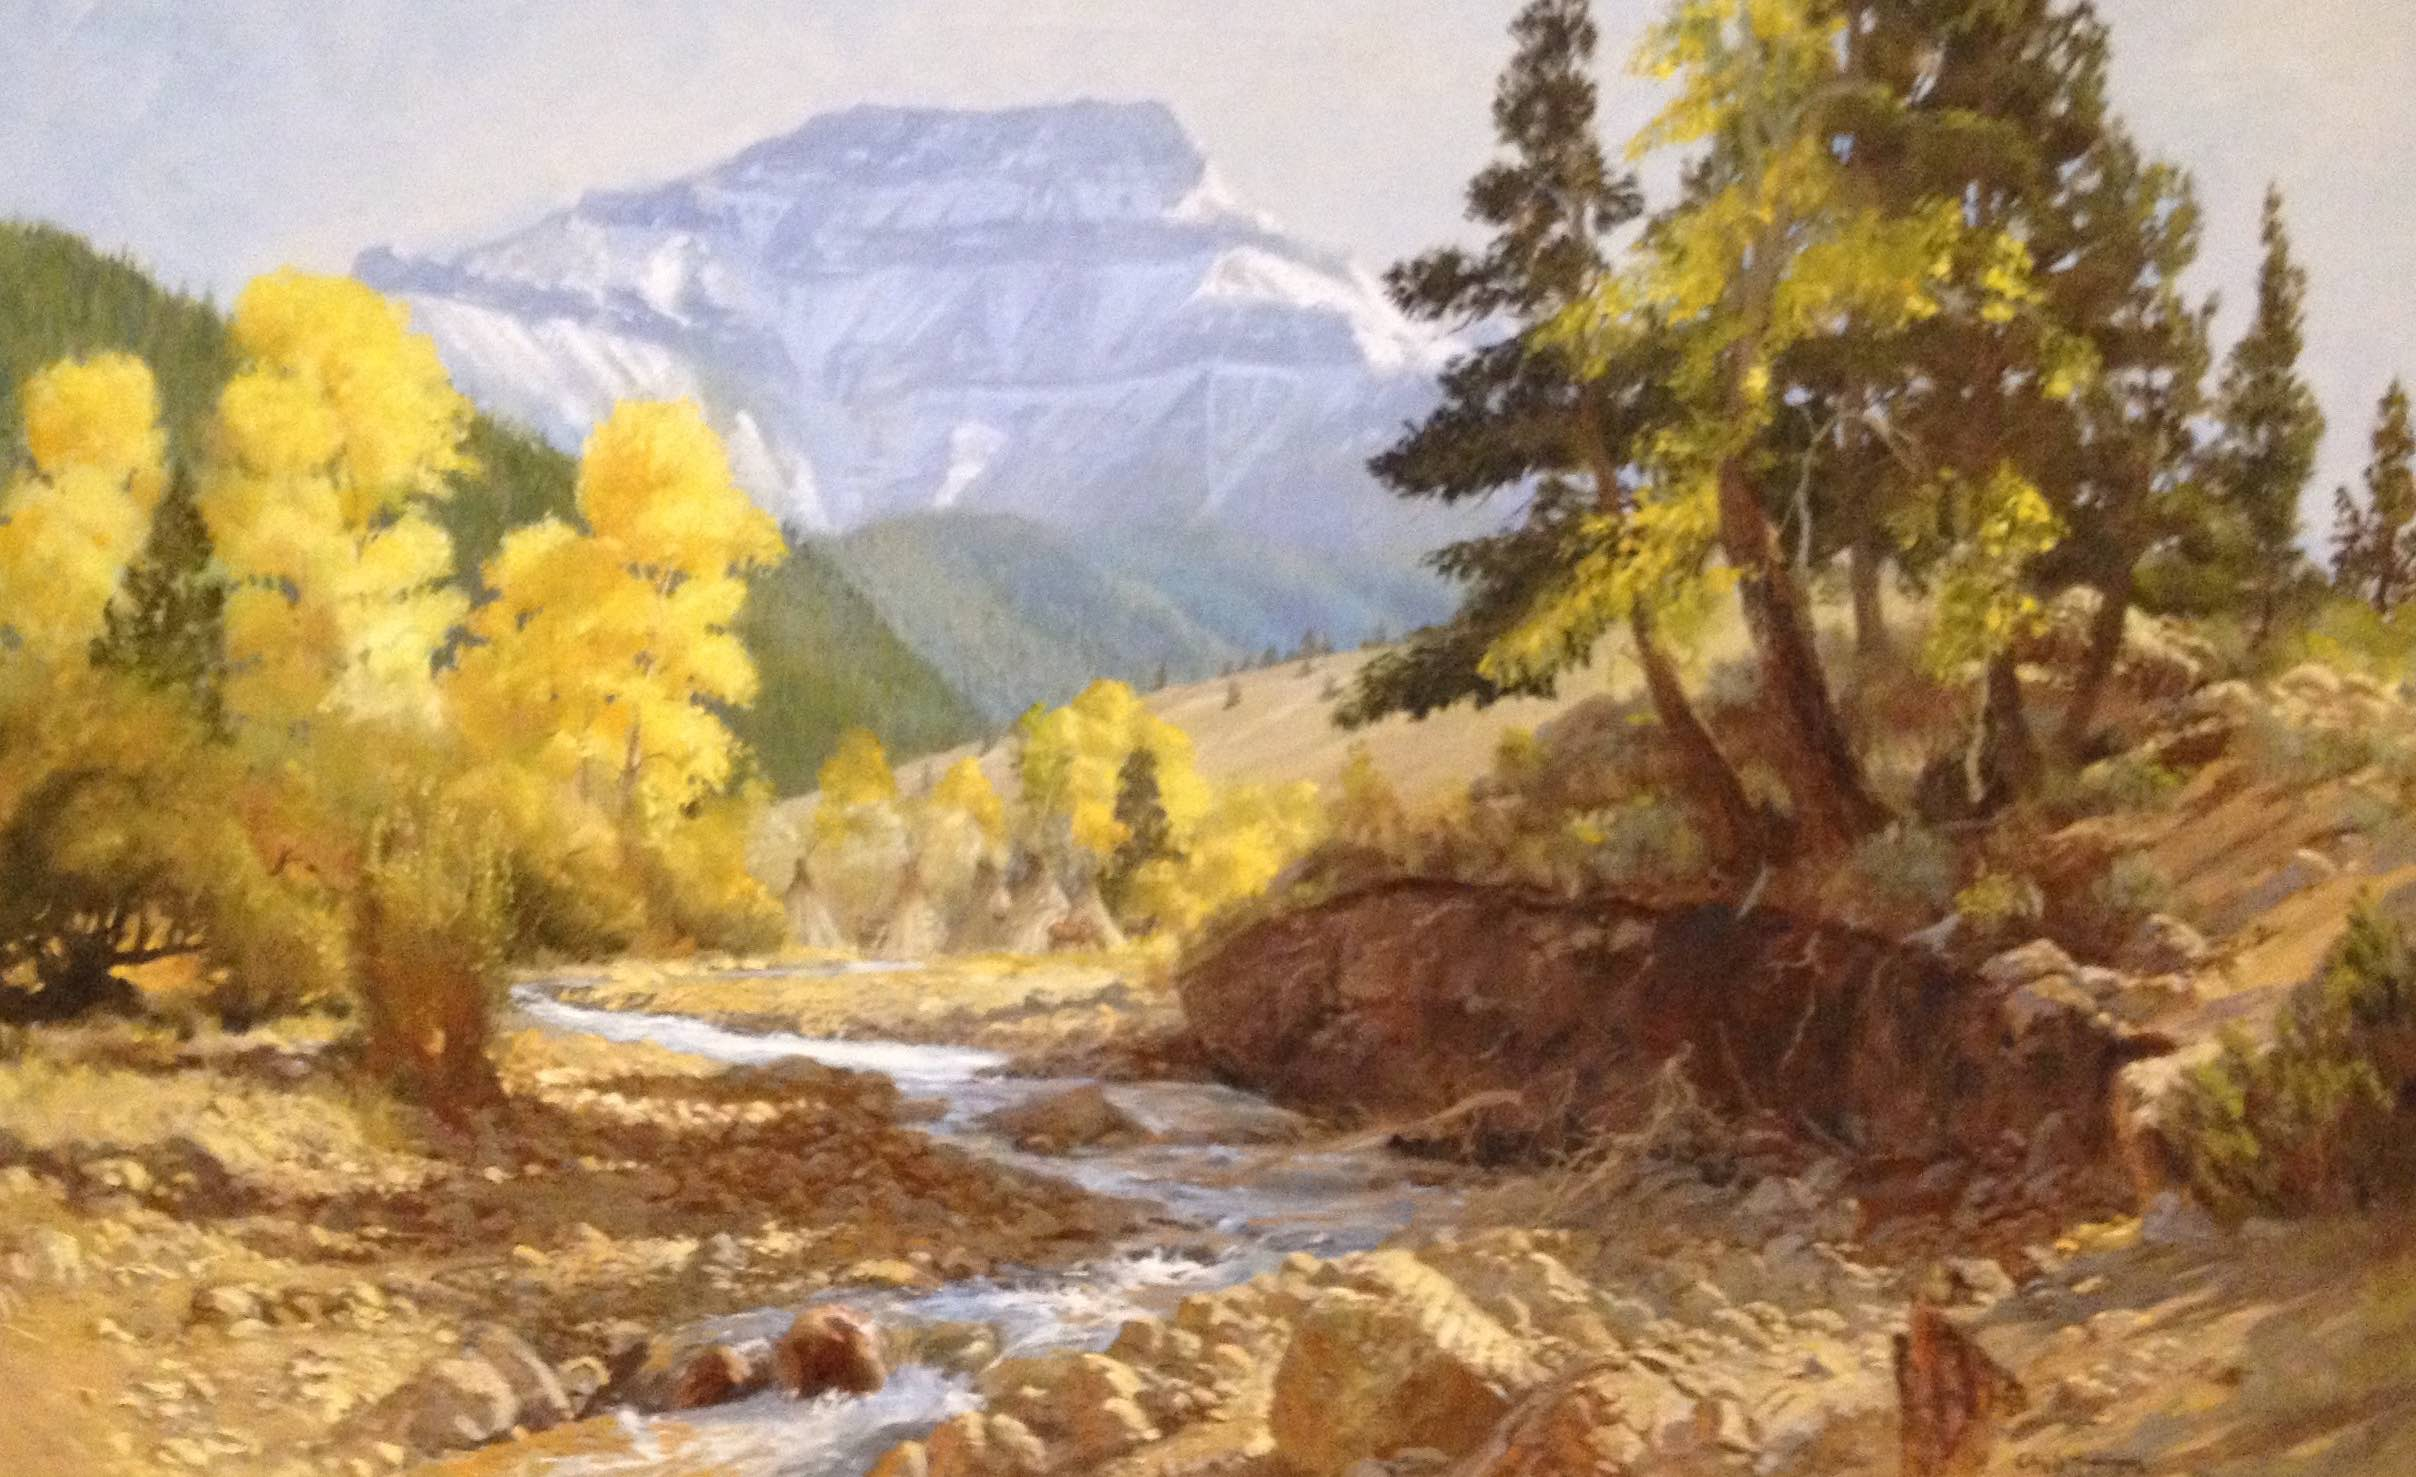 Many years ago I took this large 30 x 40 canvas up toward Yellowstone on the North Fork of the Shoshone River and painted most of this scene on location.  It was purchased by  Jim Nielsen, President of Husky Oil  (centered in Cody, Wyoming where we lived for many years). The painting became part of the Husky Oil collection and then when  Marathon Oil Company  purchased Husky Oil the painting became part of the Marathon Collection.    I hadn't seen it for many years but in 2012 it was displayed in the  Buffalo Bill Museum  and it was like seeing an old friend.